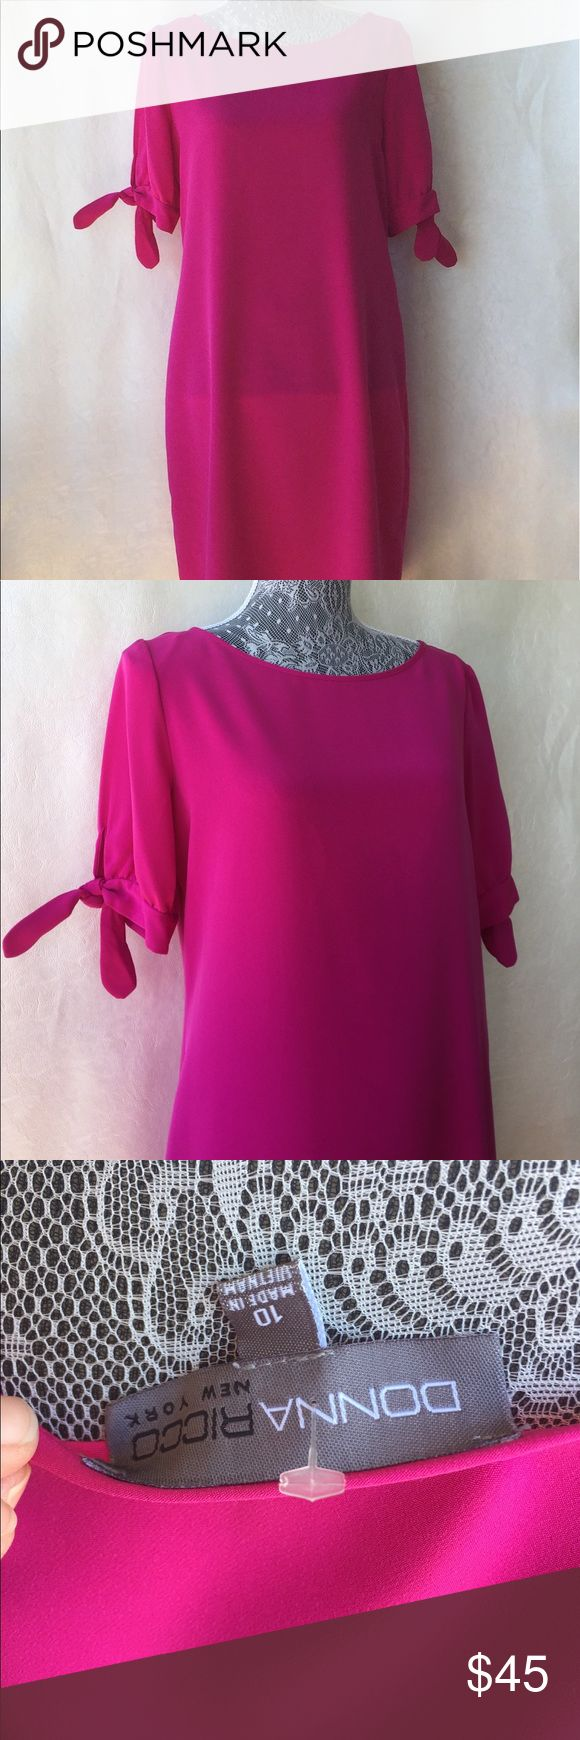 Fucsia Donna Rico Shift Dress Stunning and simple! Donna Ricco Fuscia Colored Shift Dress with tied sleeves. Perfect for summer events, weddings, or cocktail parties or could be worn to work too. Just beautiful! 37 long 40 chest. Thank you for shopping! NWOT. Donna Ricco Dresses Midi